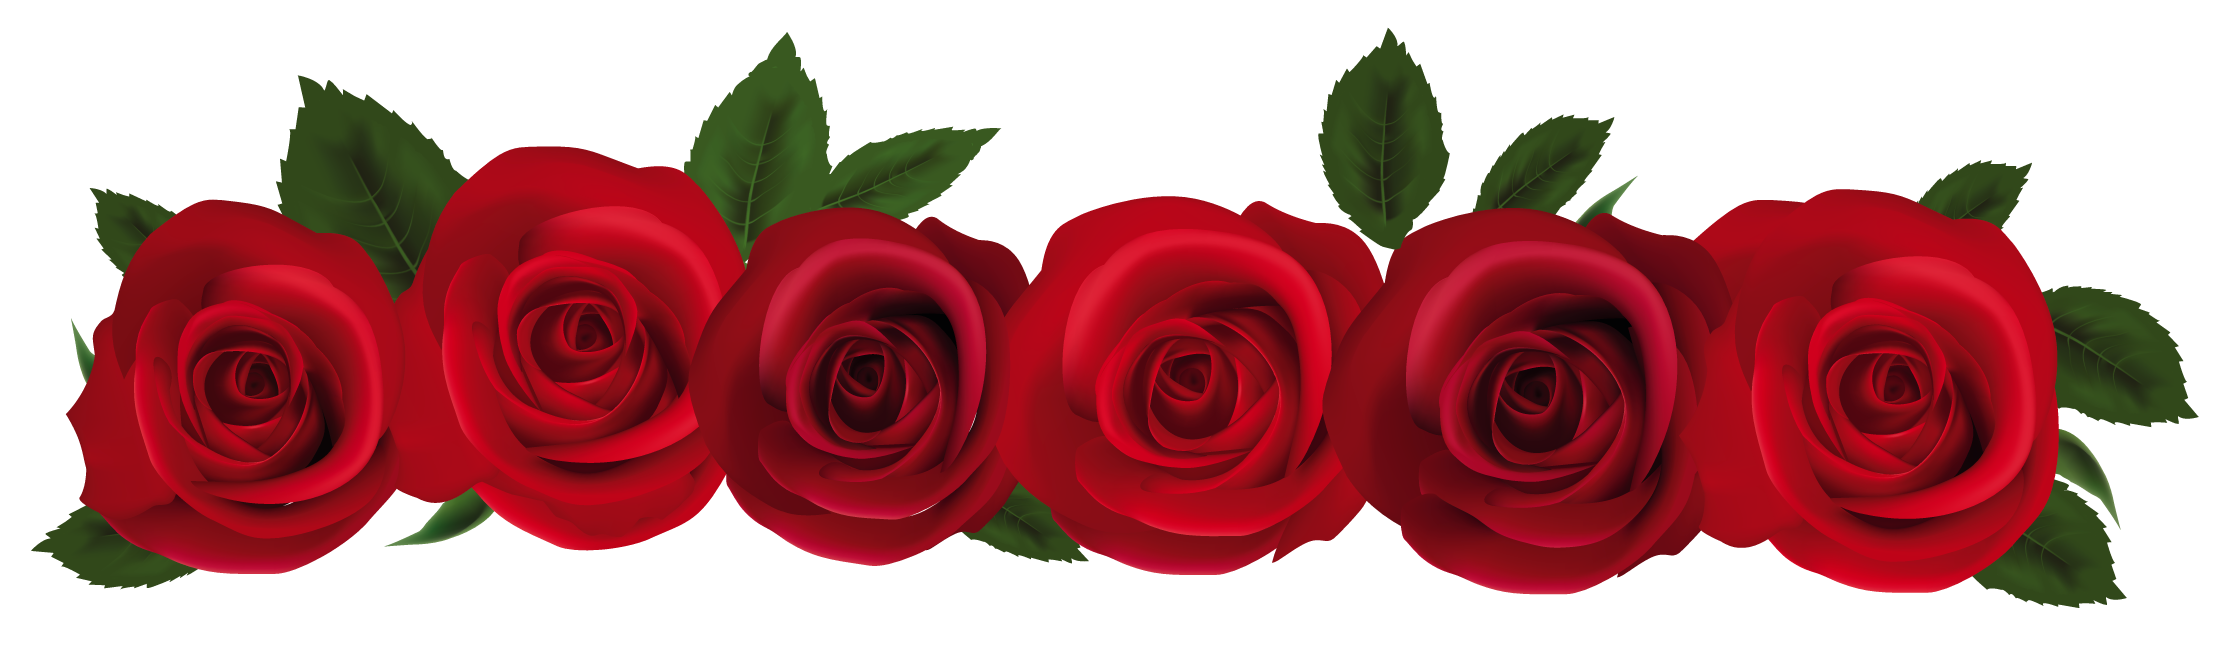 Free Rose Corner Cliparts, Download Free Clip Art, Free Clip.